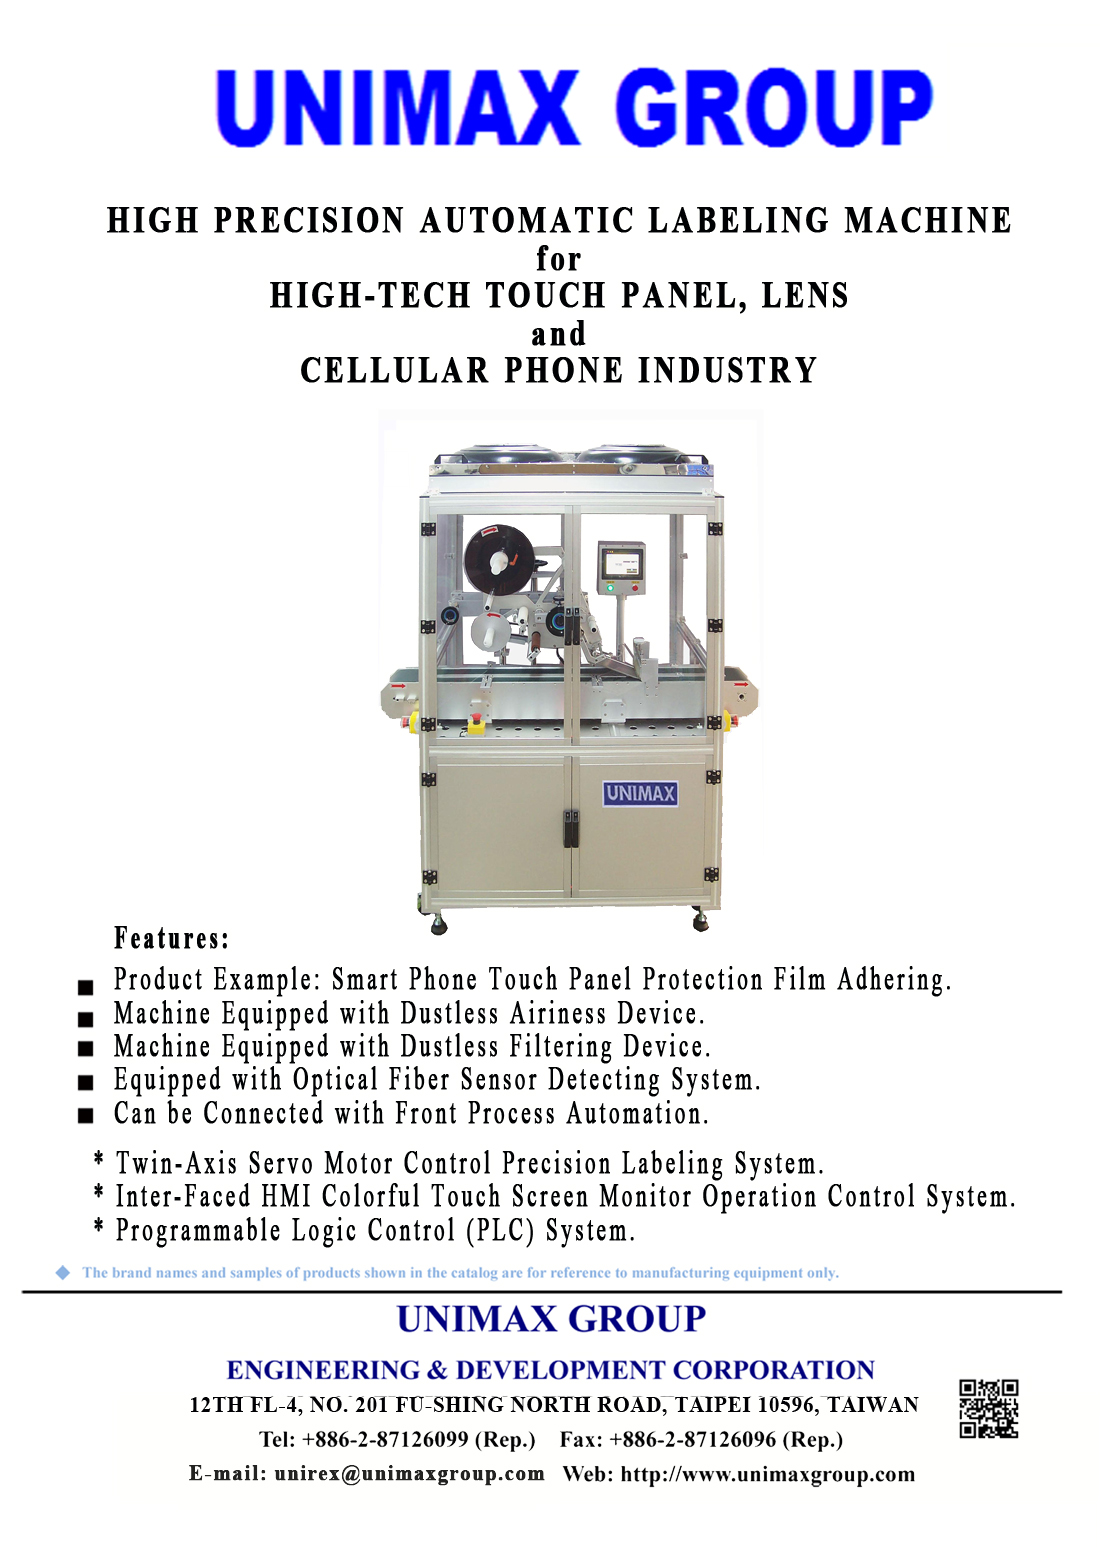 High-Tech Series 310B2 for High-Tech Touch Panel